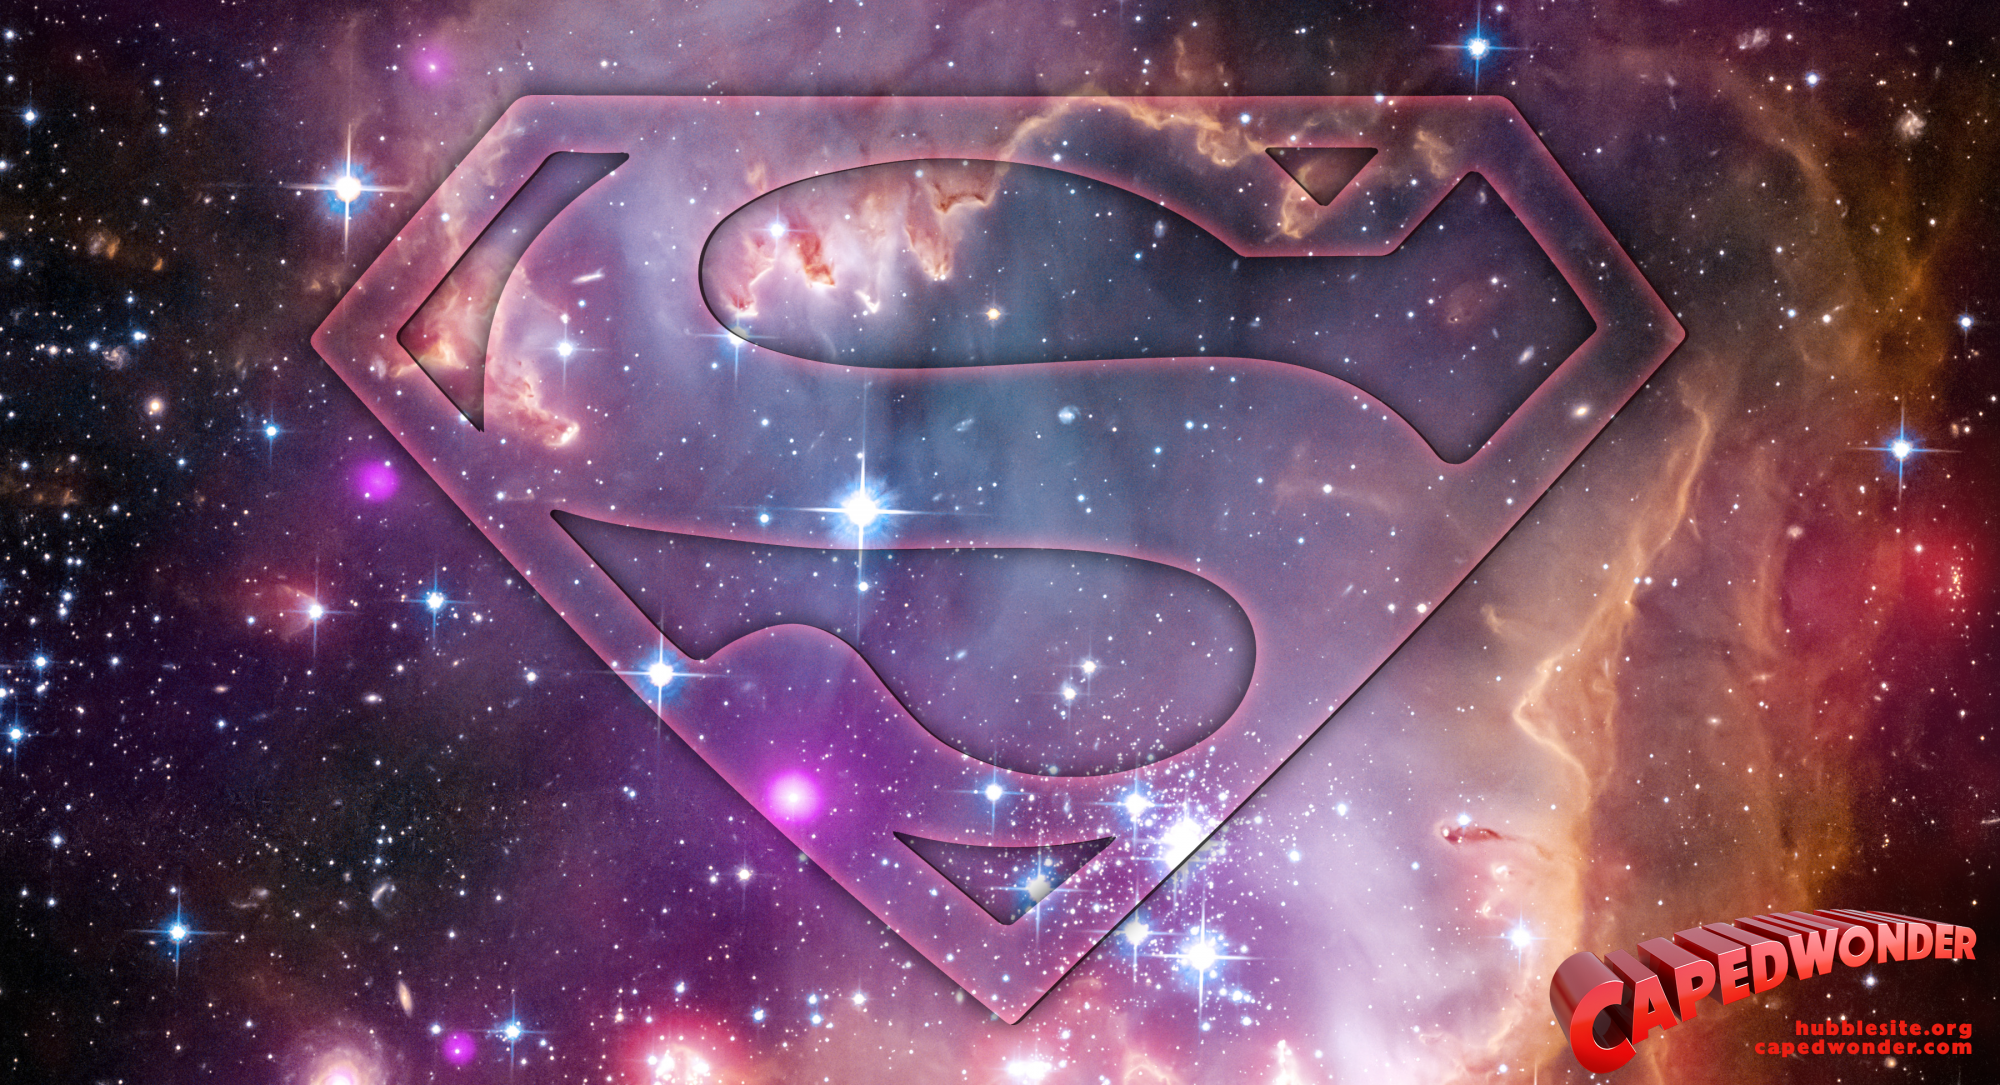 CapedWonder-Superman-S-wallpaper-space-2015-01